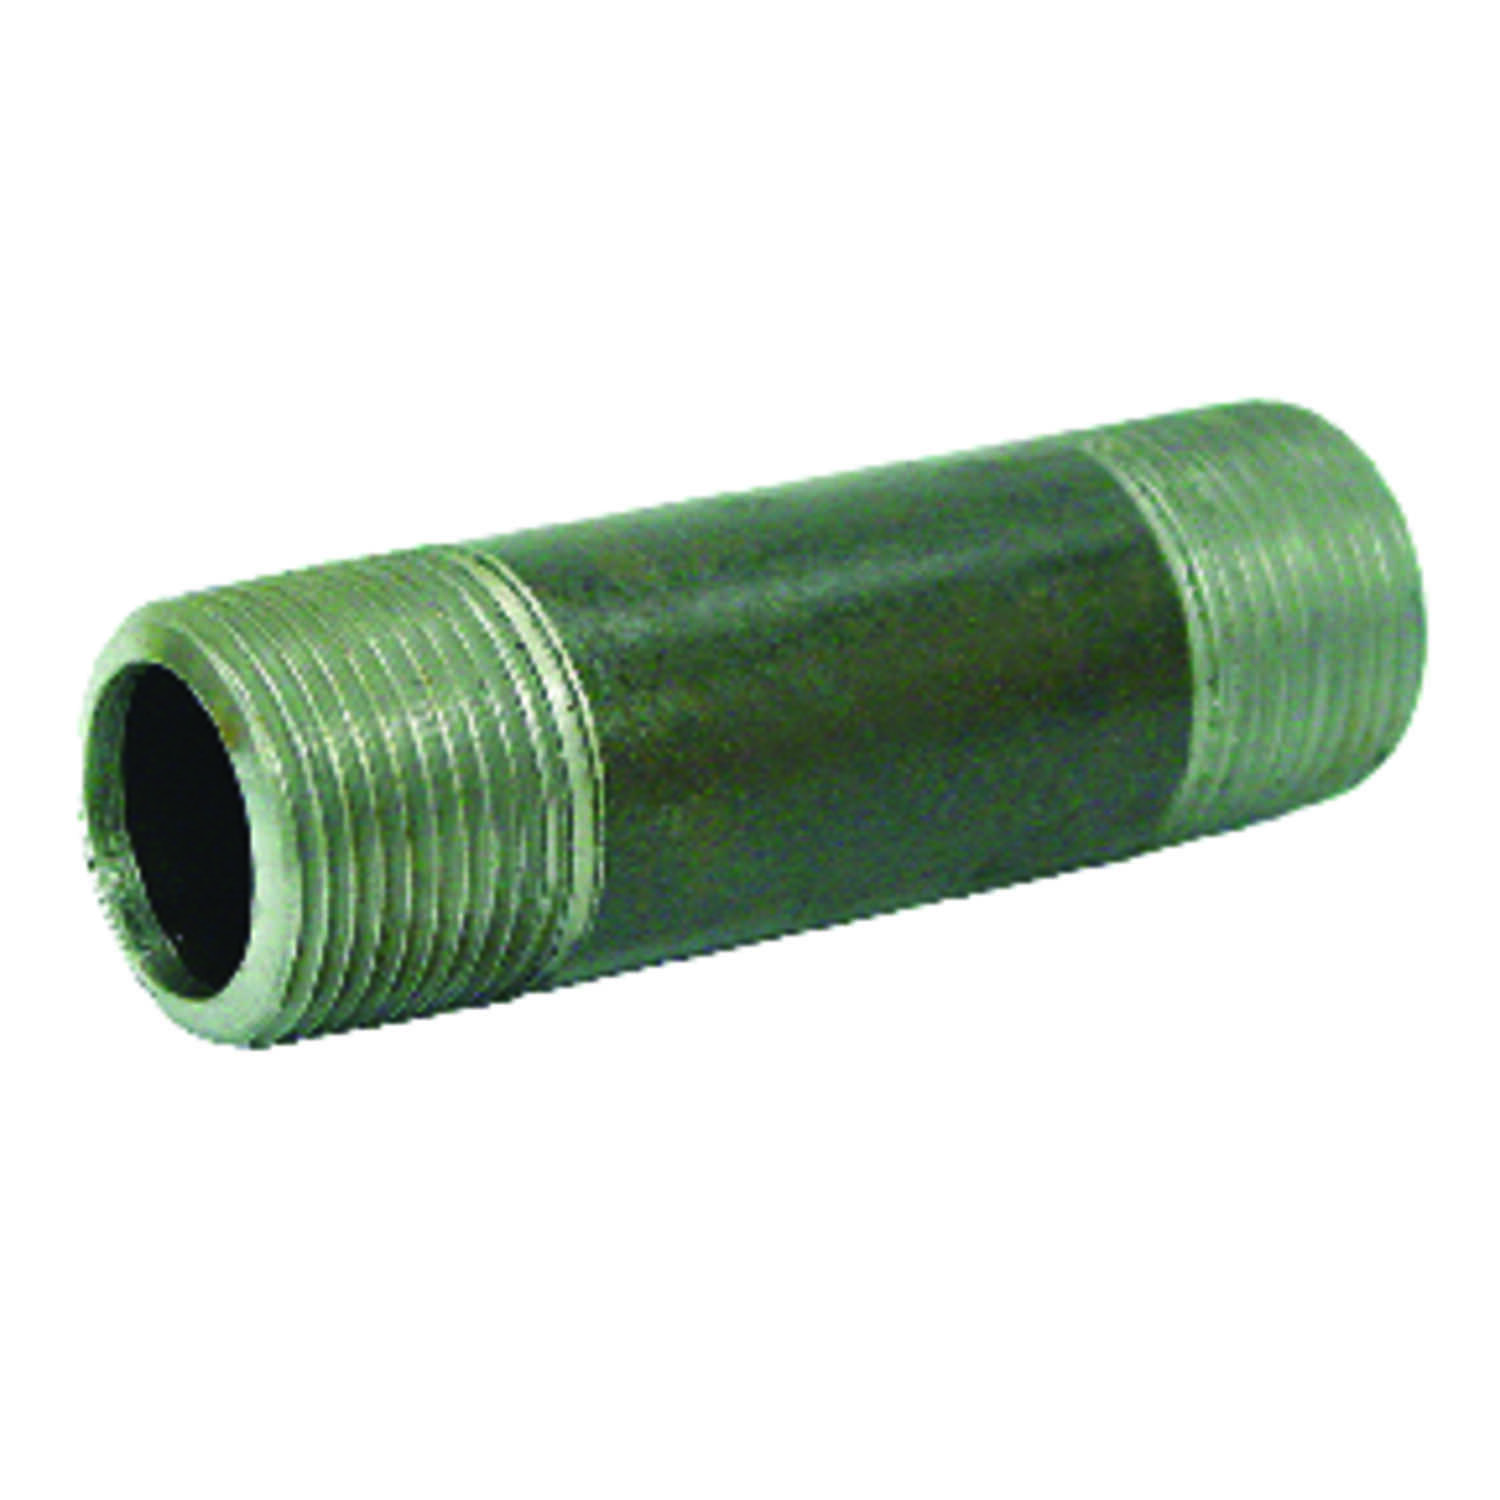 Anvil  Beck  1-1/2 in. MPT   x 1-1/2 in. Dia. x 2-1/2 in. L MPT  Galvanized  Steel  Pipe Nipple